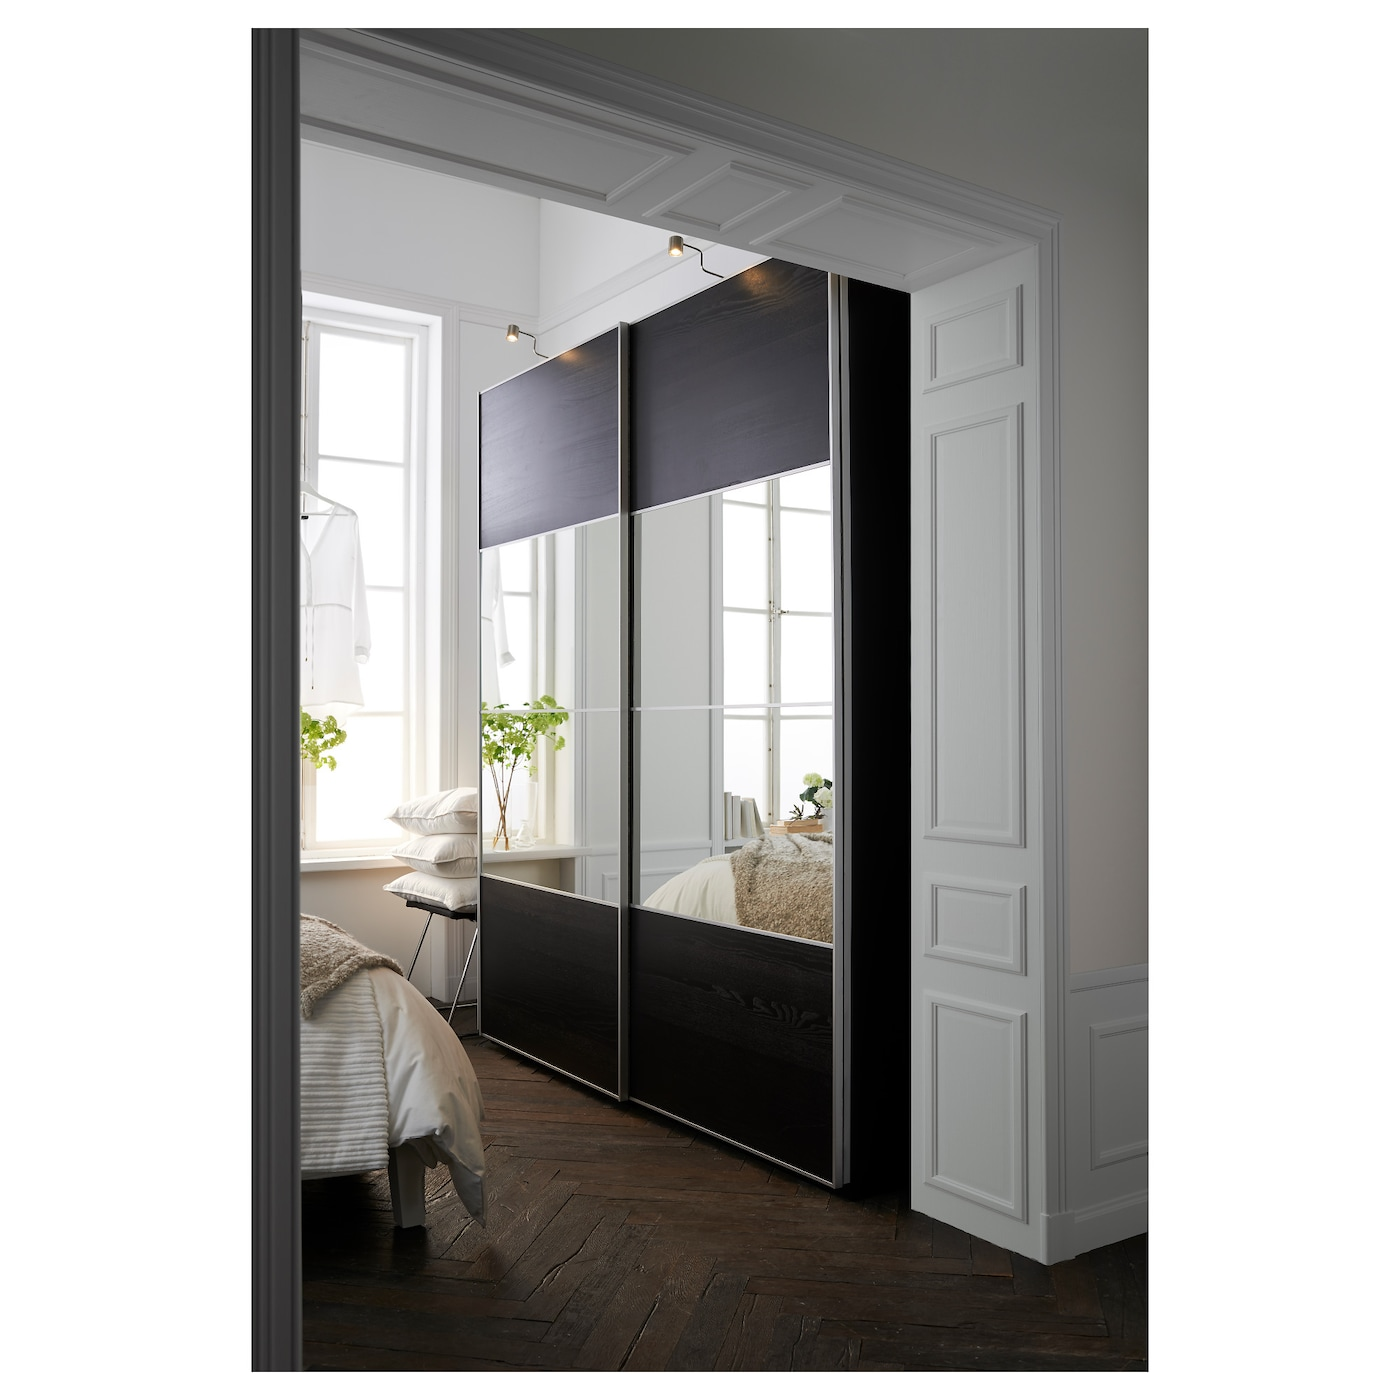 Pax wardrobe black brown auli ilseng 200x66x236 cm ikea for Armoire murale bureau